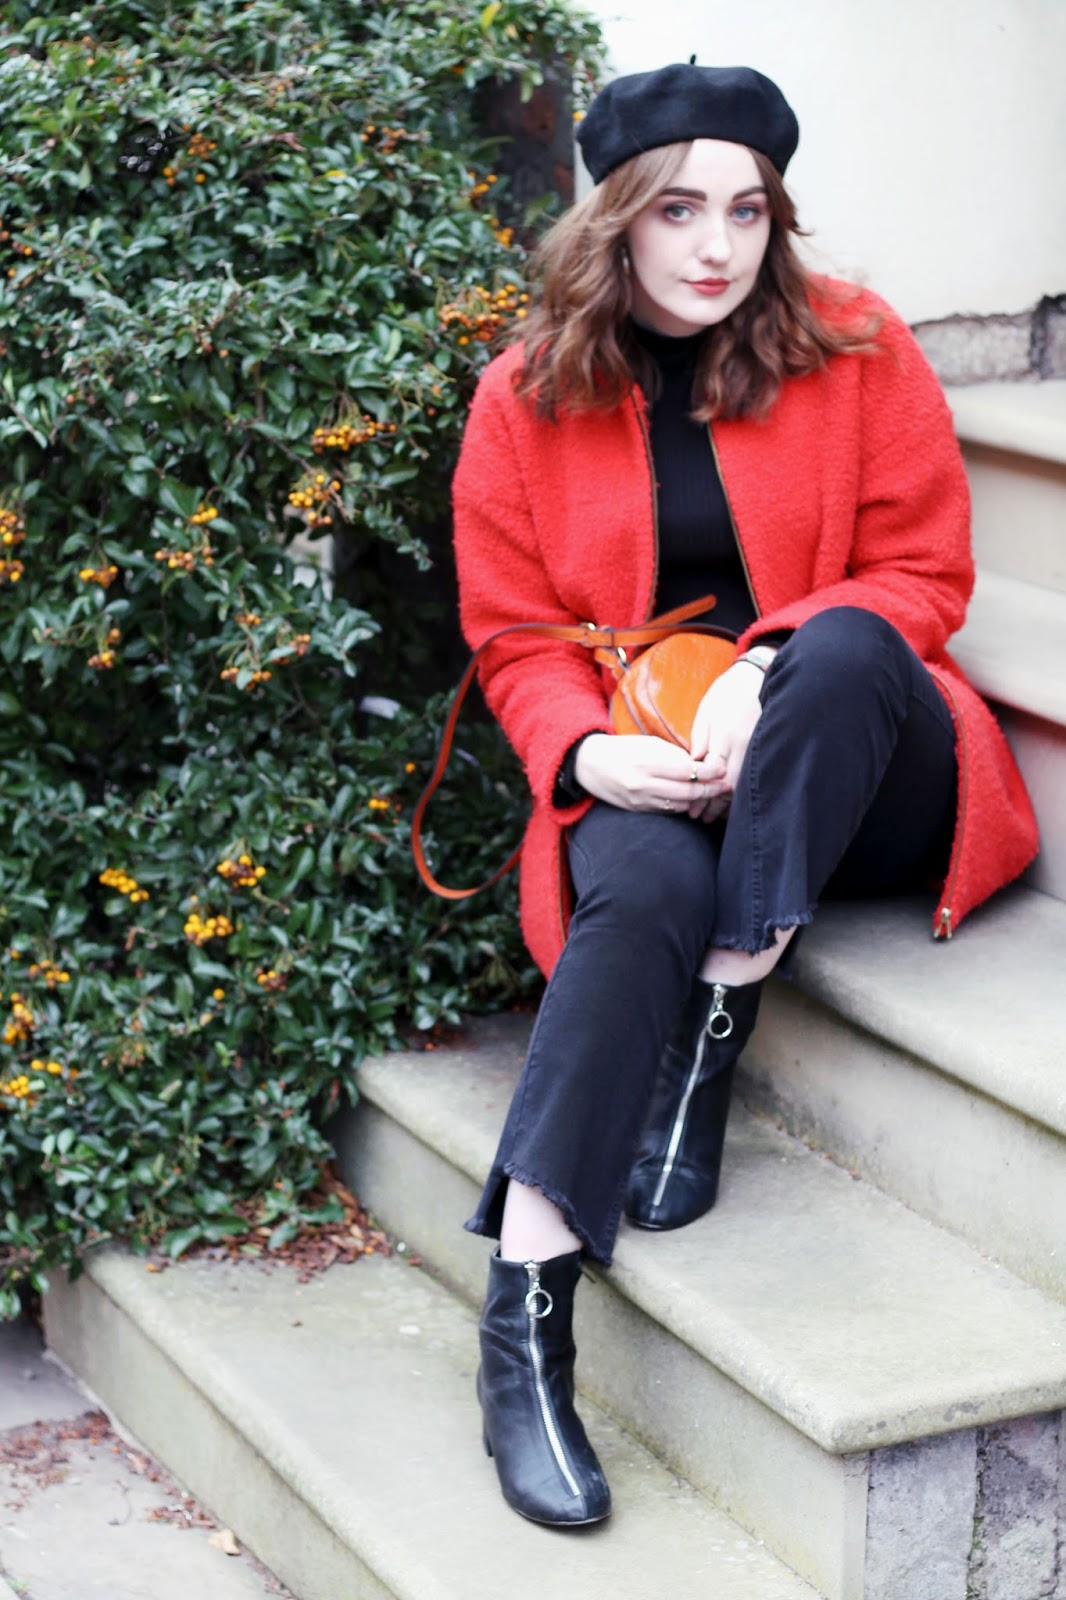 Liverpool fashion blogger wearing black beret, orange coat, orange round bag, black top, black kick flare jeans and black zip up boots